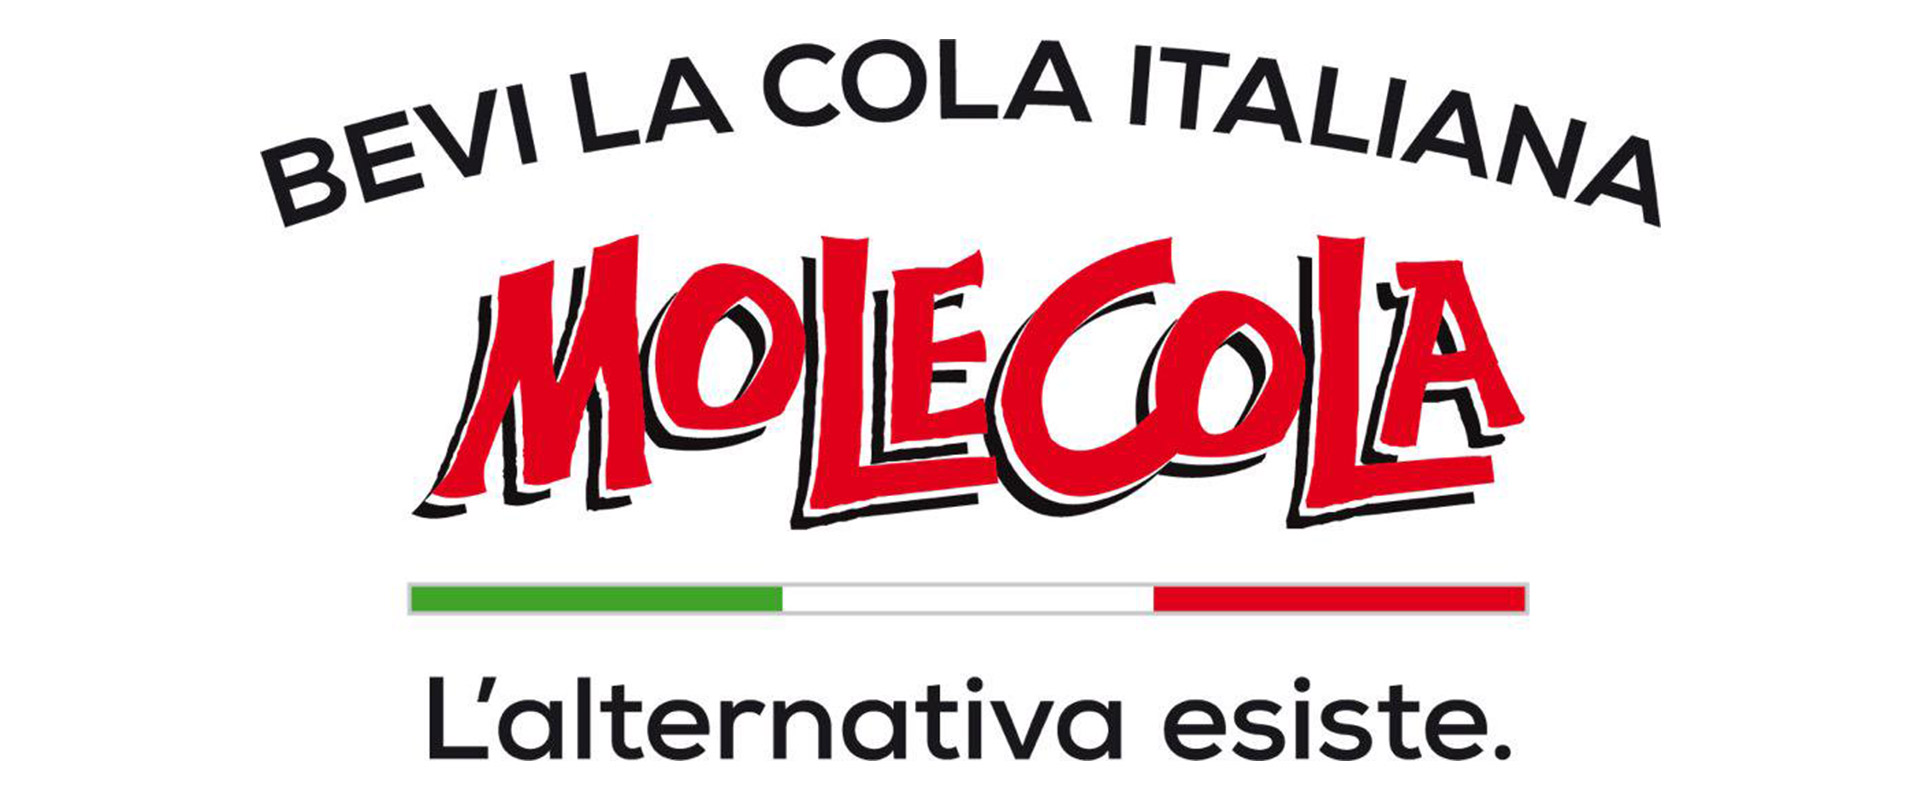 Molecola 90-60-90: l'alternativa italiana in vetro